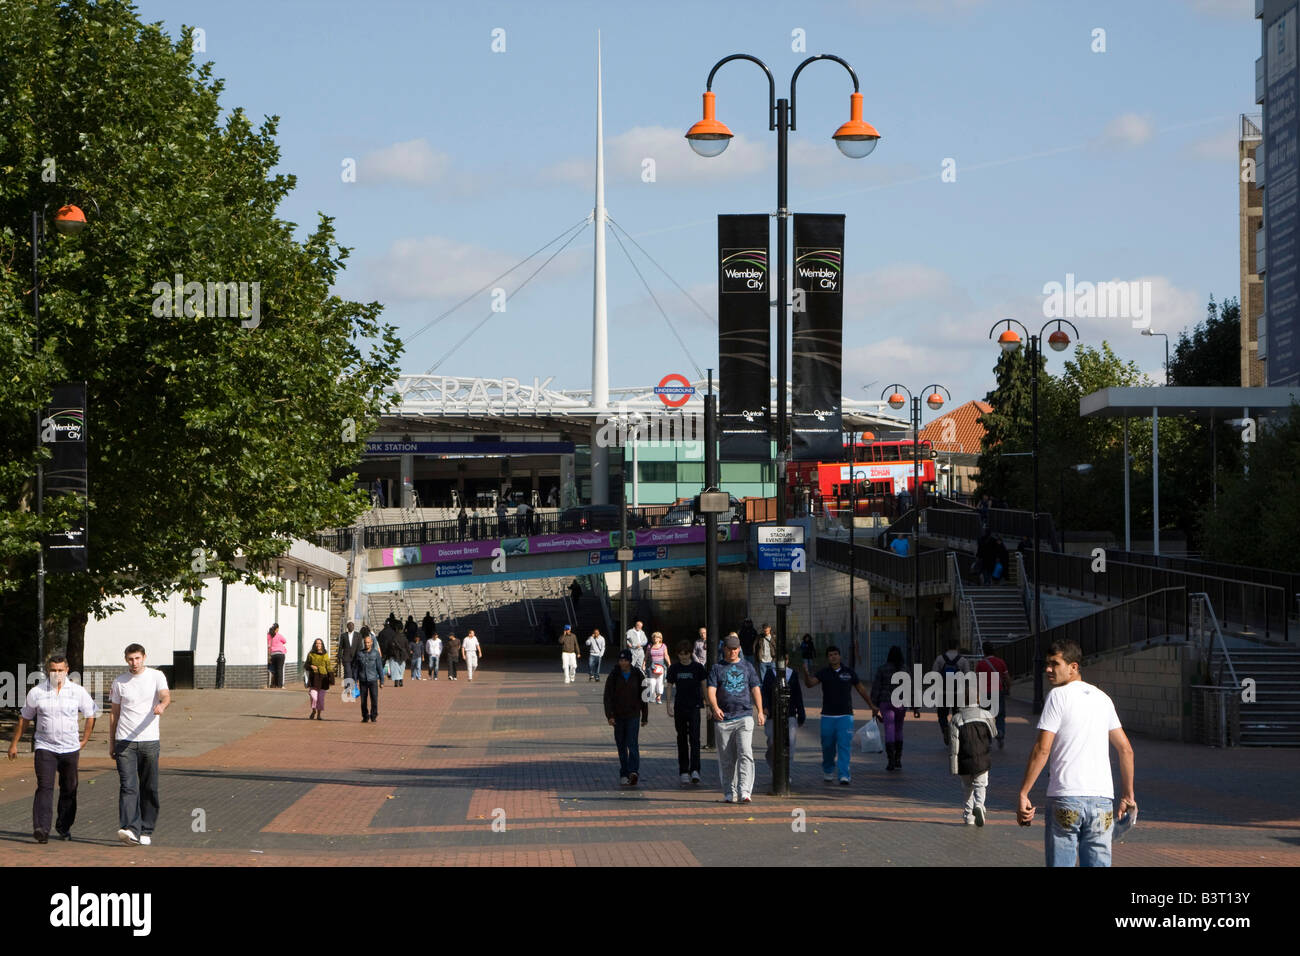 olympic way wembley stadium brent london england uk gb - Stock Image